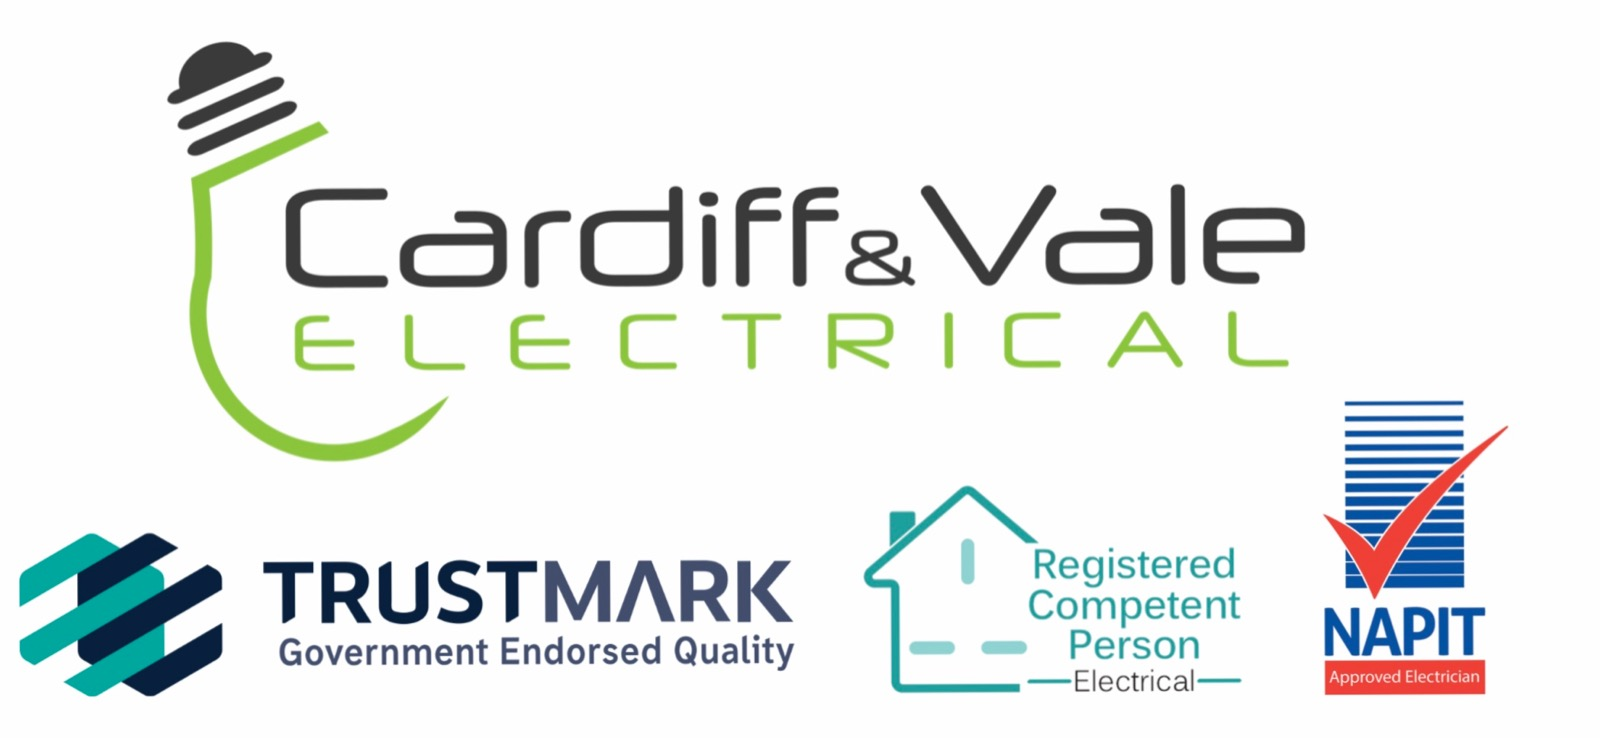 Cardiff and Vale Electrical